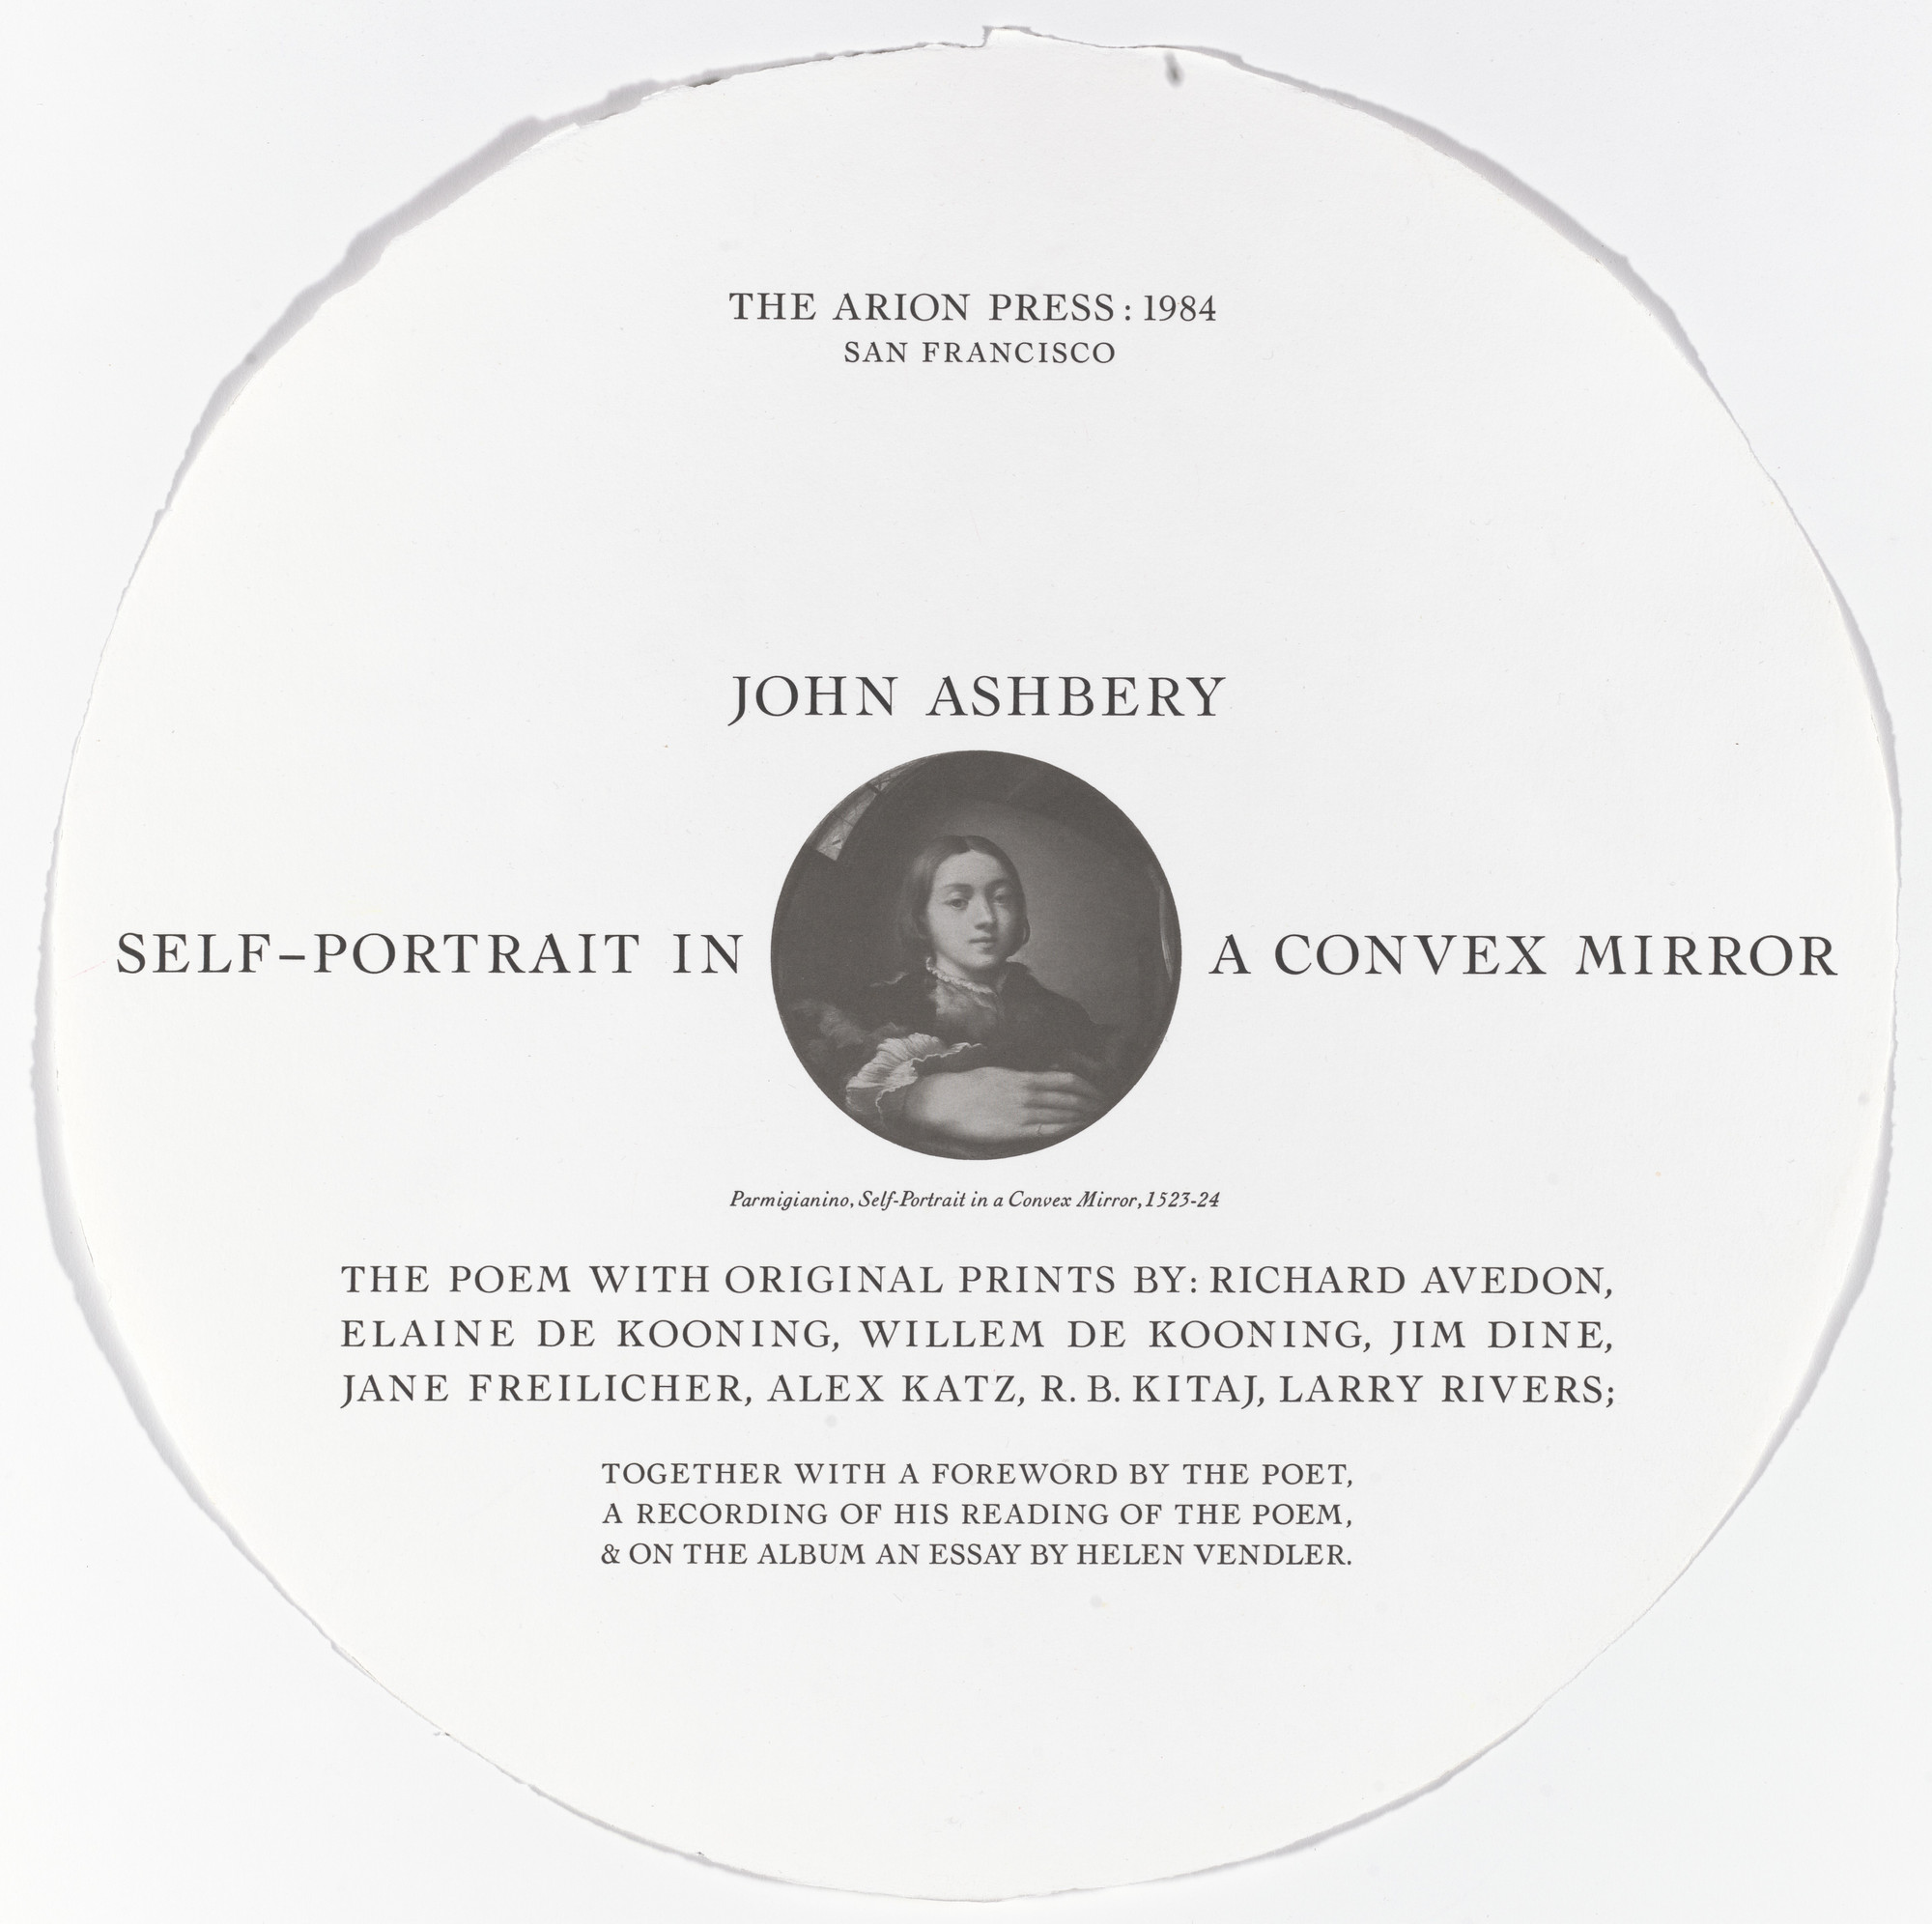 Various Artists, Richard Avedon, Jim Dine, Jane Freilicher, Alex Katz, R. B. Kitaj, Willem de Kooning, Elaine de Kooning, Larry Rivers. Self-Portrait in a Convex Mirror. 1984